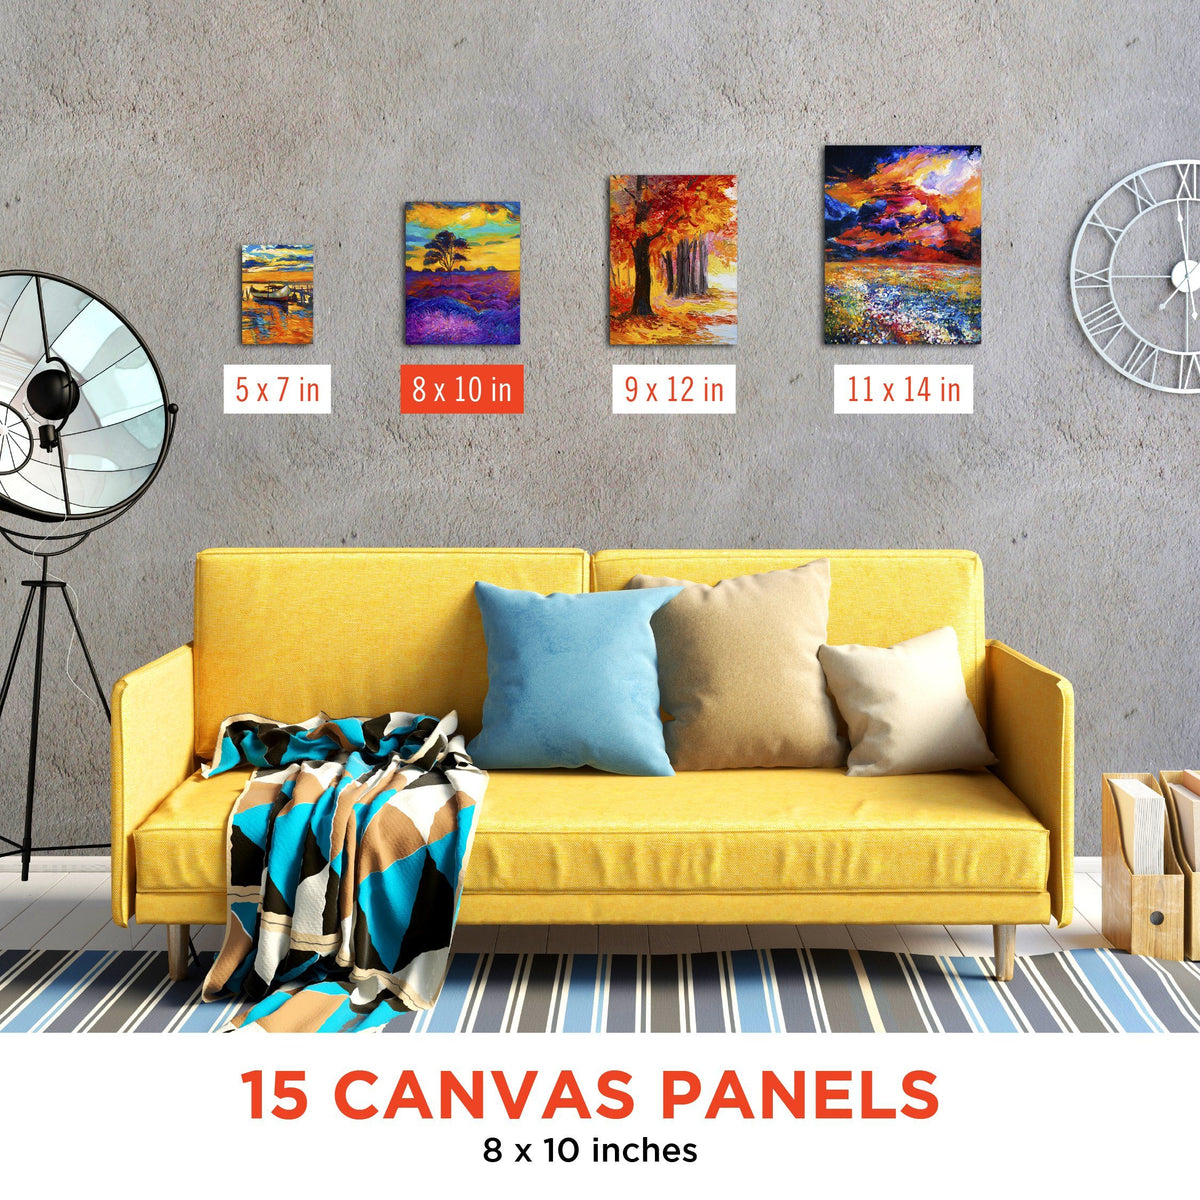 Paint Canvas Panels 8x10 inch (15 Pack)